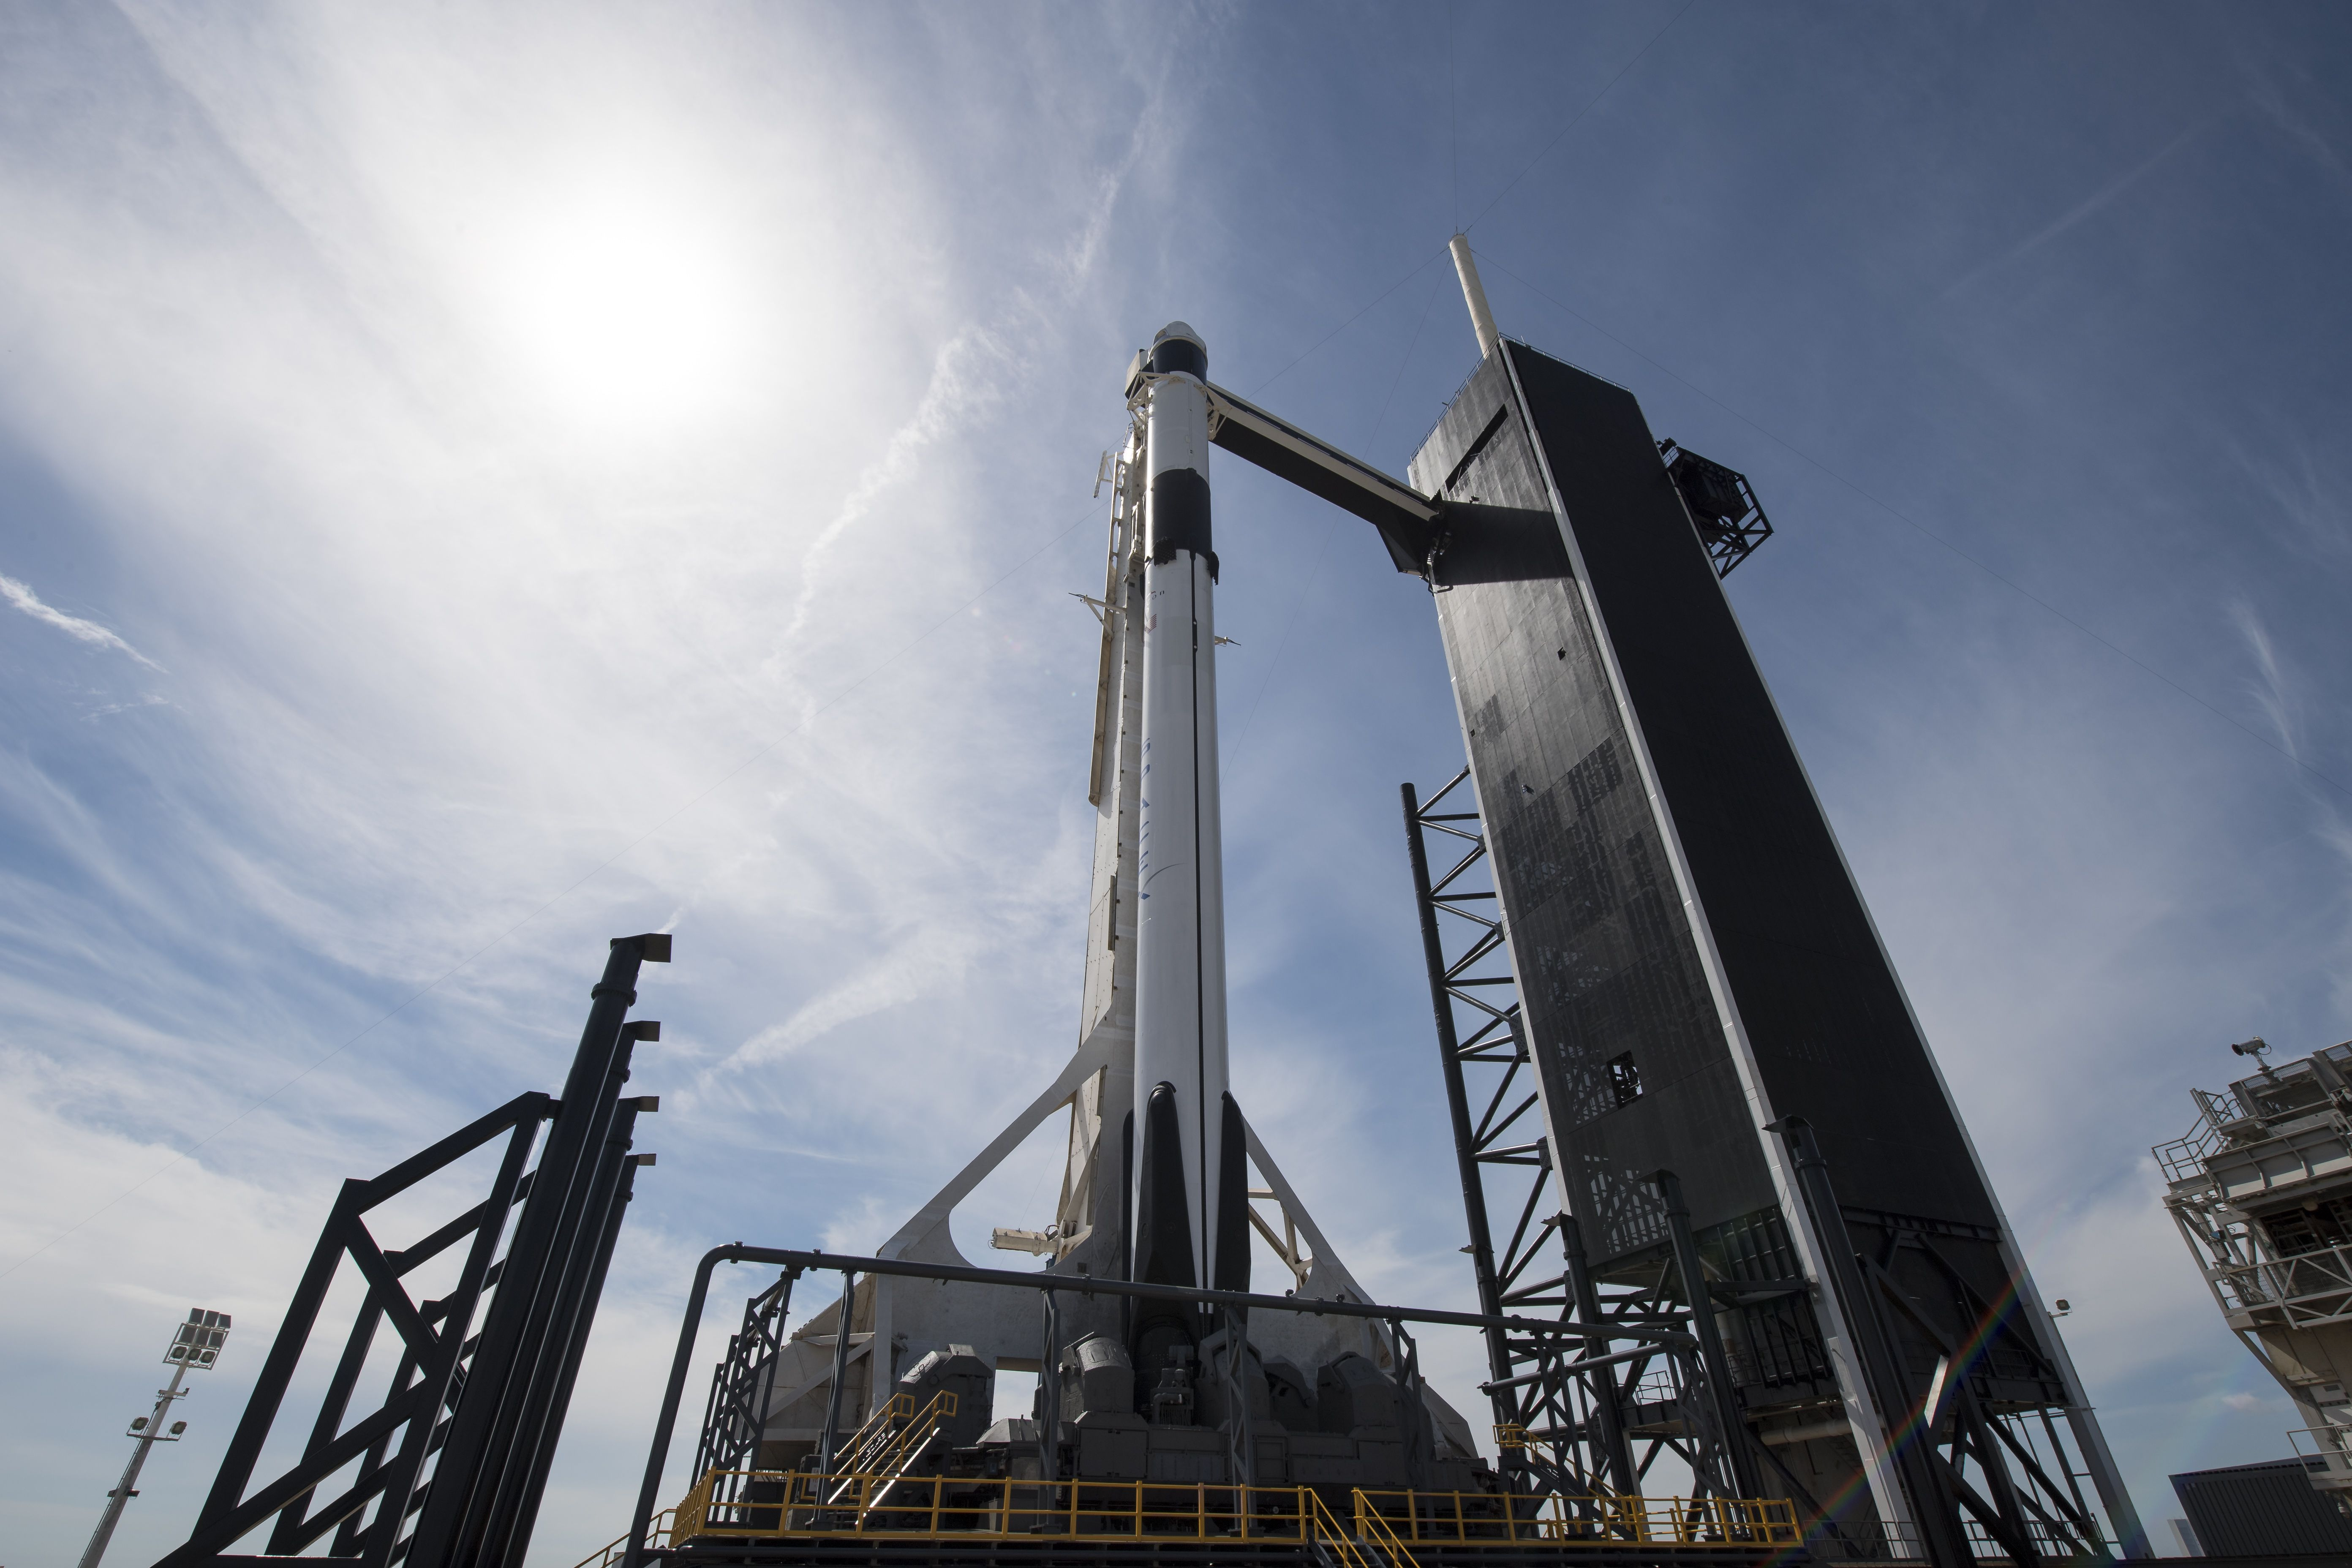 In May, SpaceX Will Return Human Spaceflight to U.S. Soil